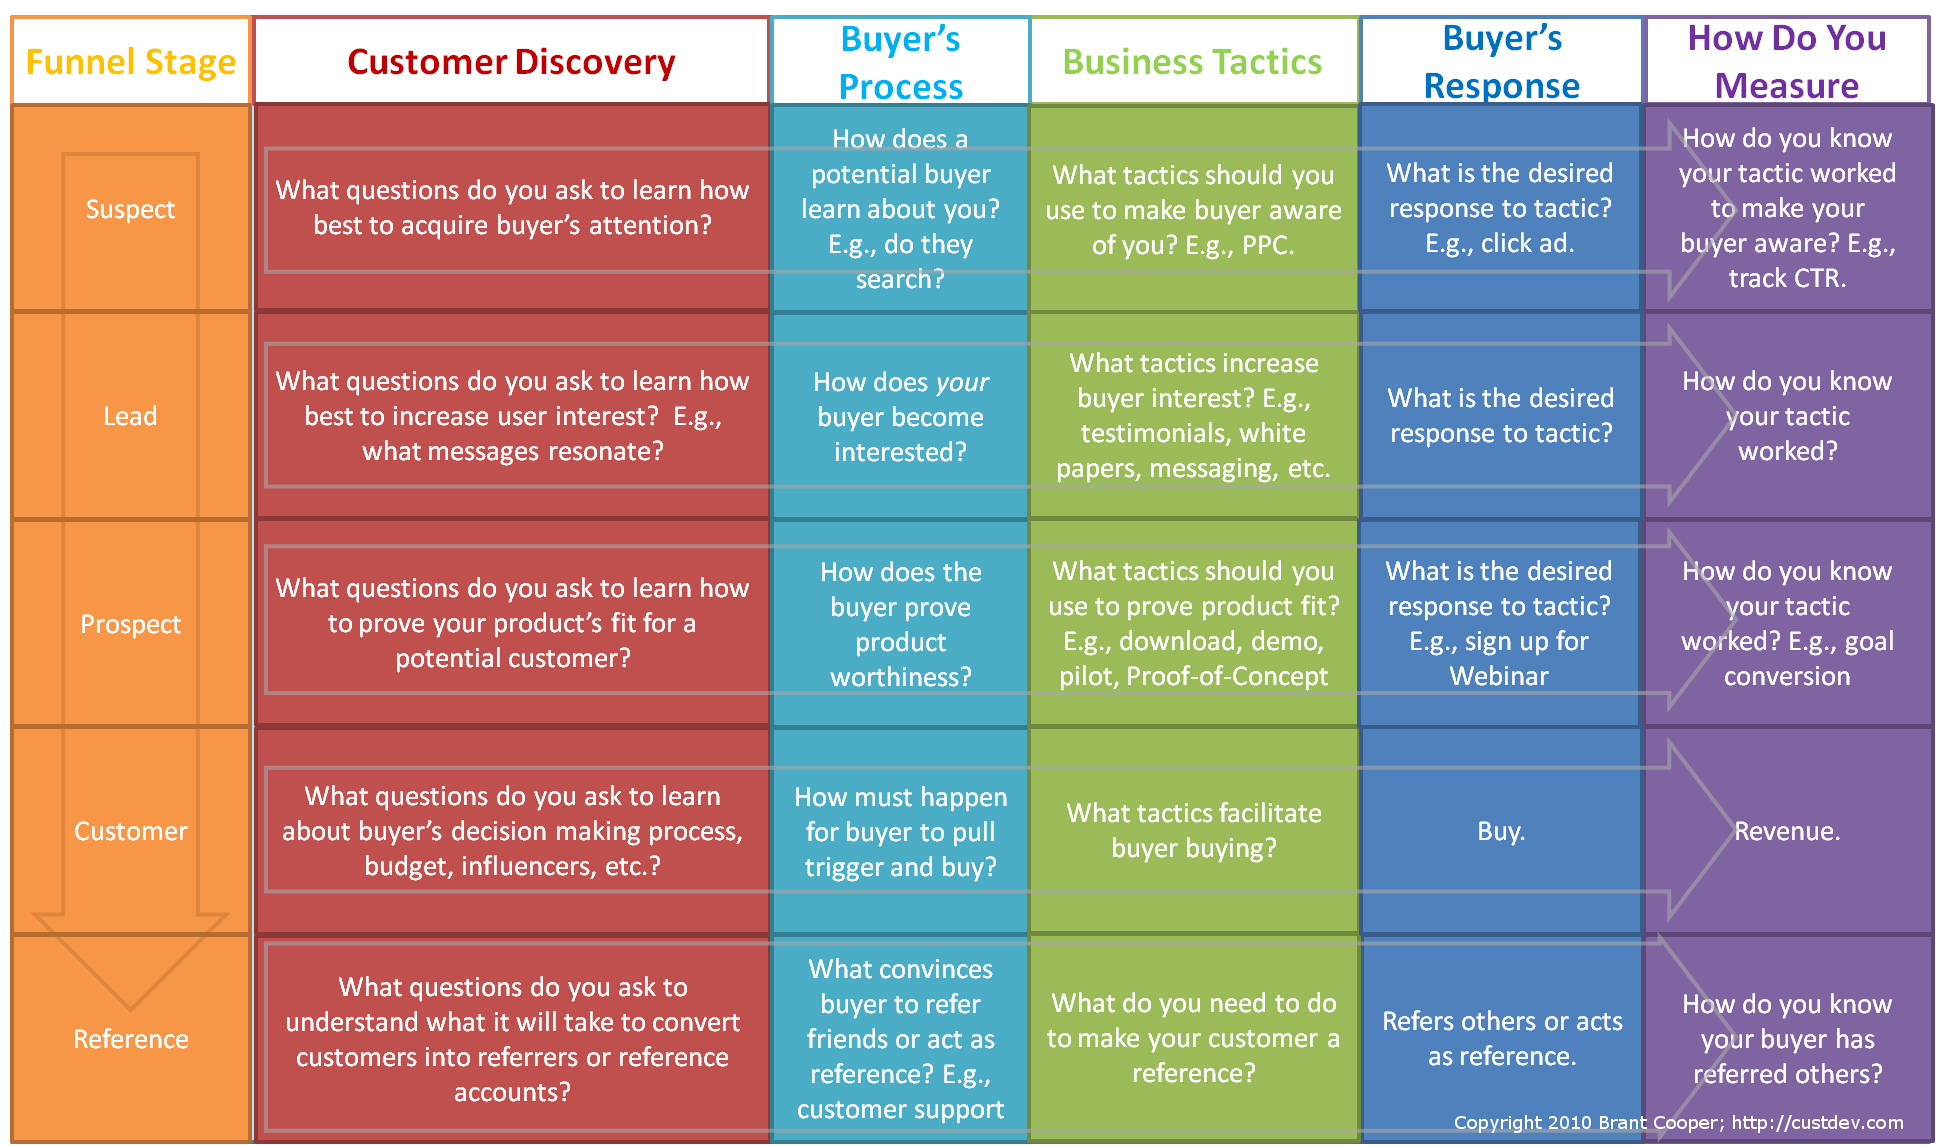 Customer Development Funnel Image v.4